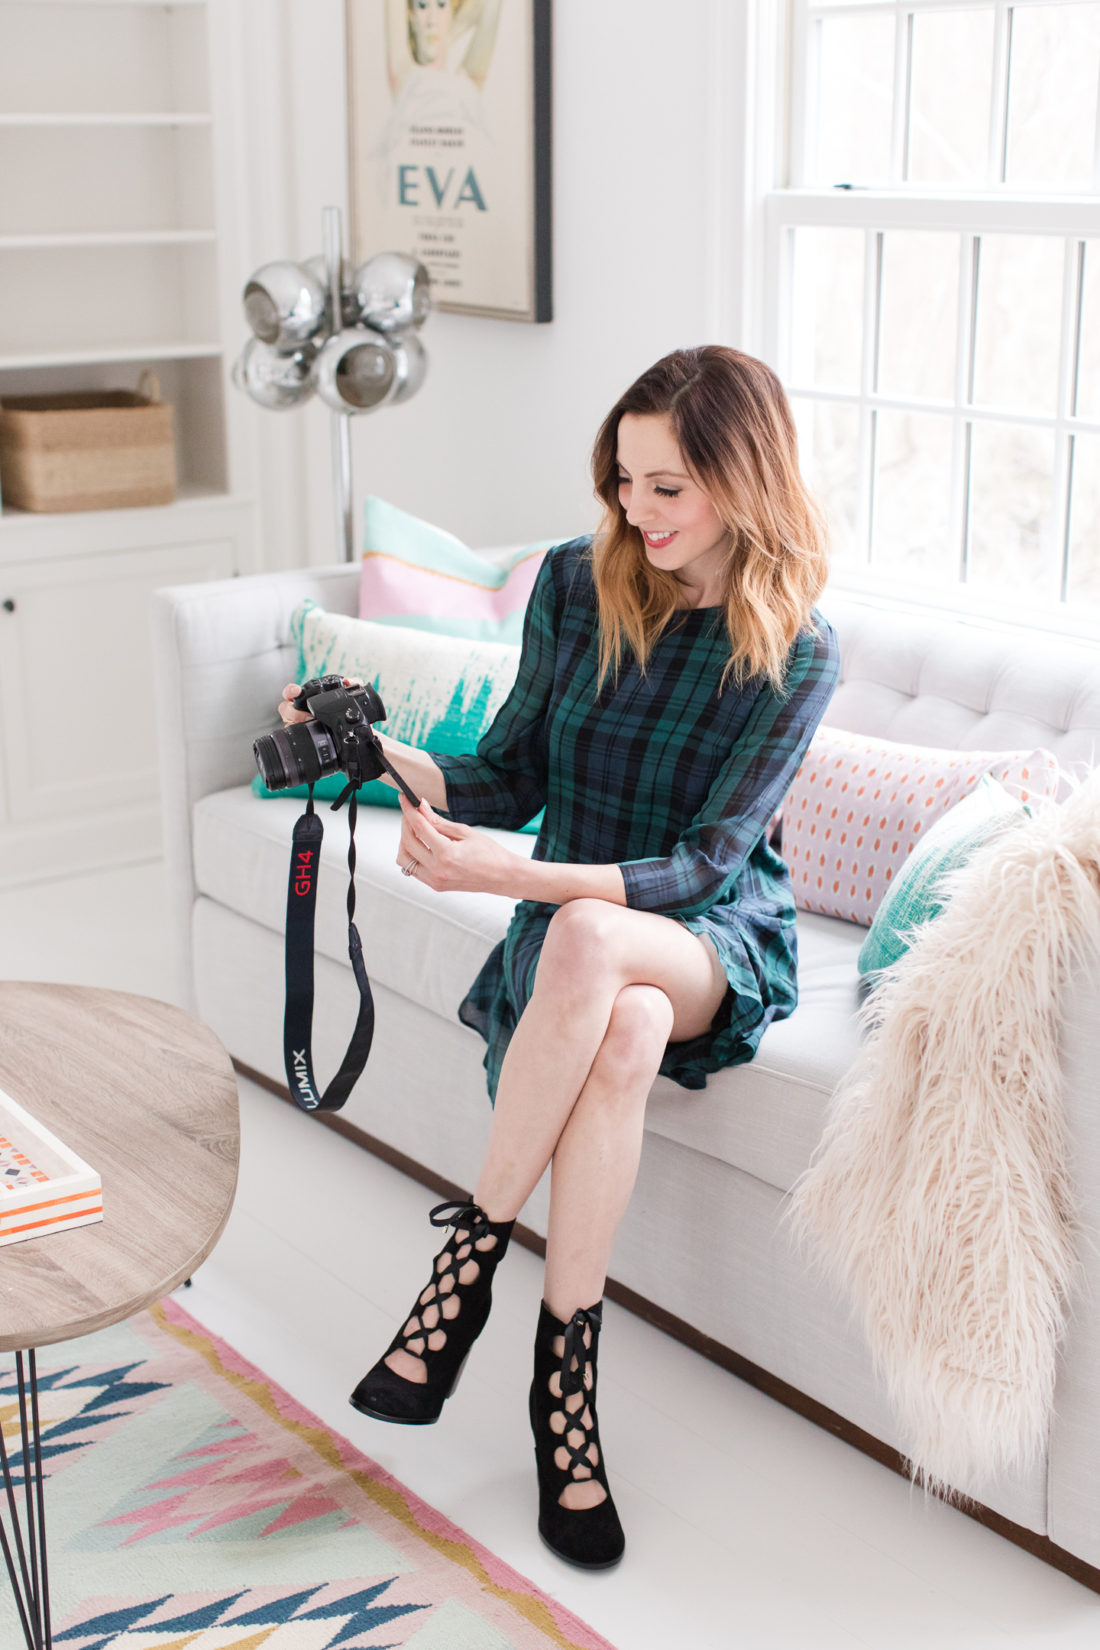 931a71c8319be Eva Amurri Martino wears a plaid shift dress and black boots while she  shoots with her